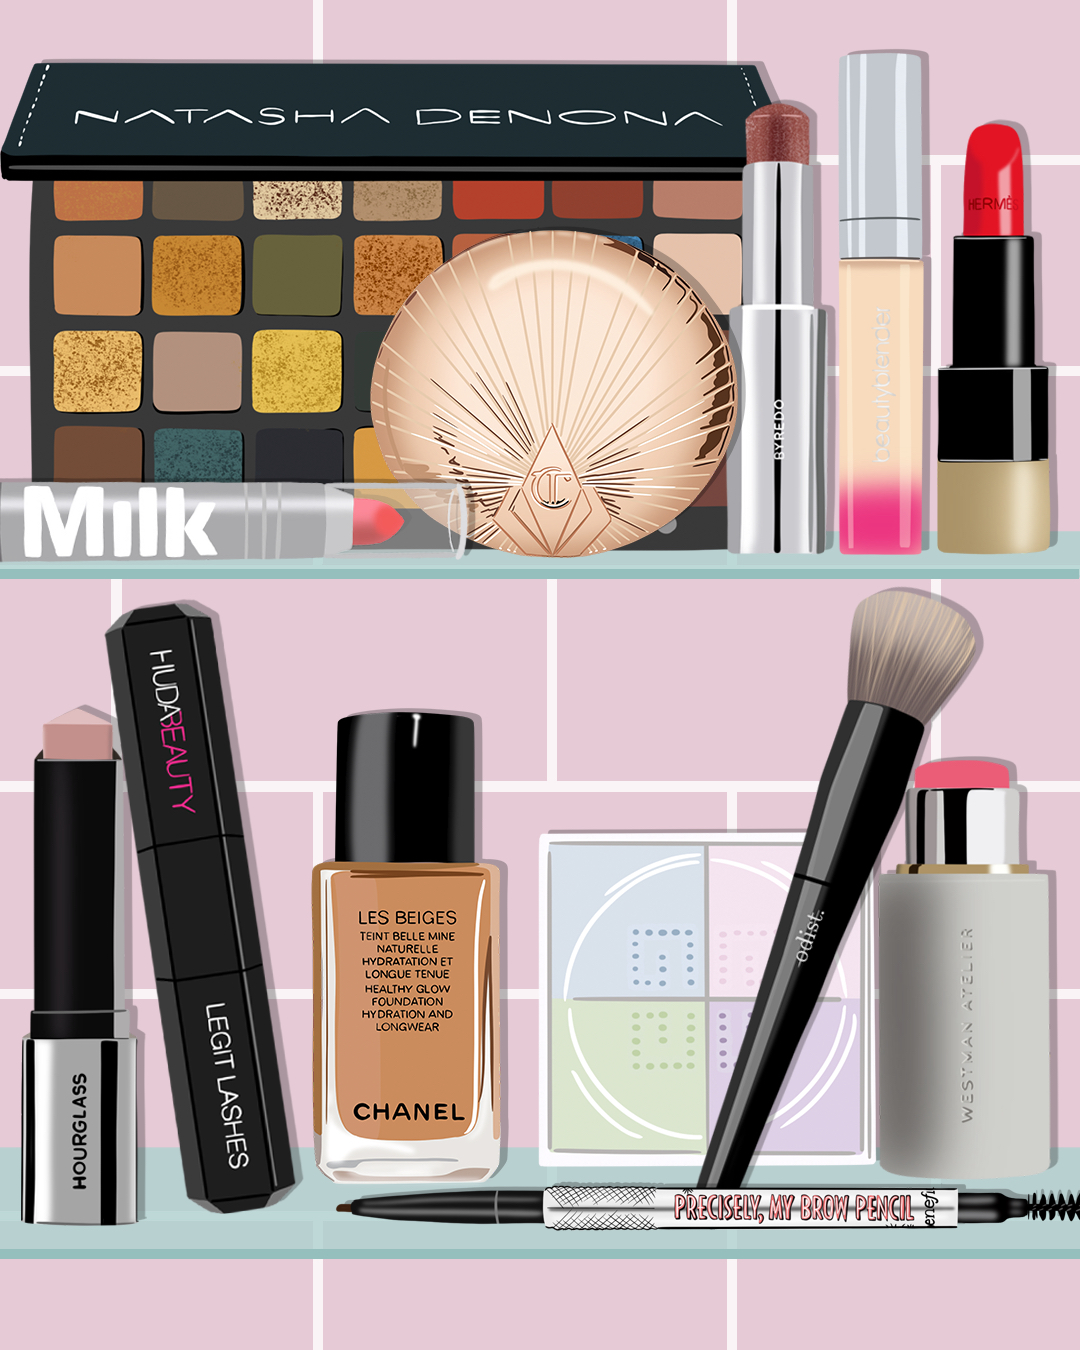 Savoir Flair Best of Beauty 2020 Makeup